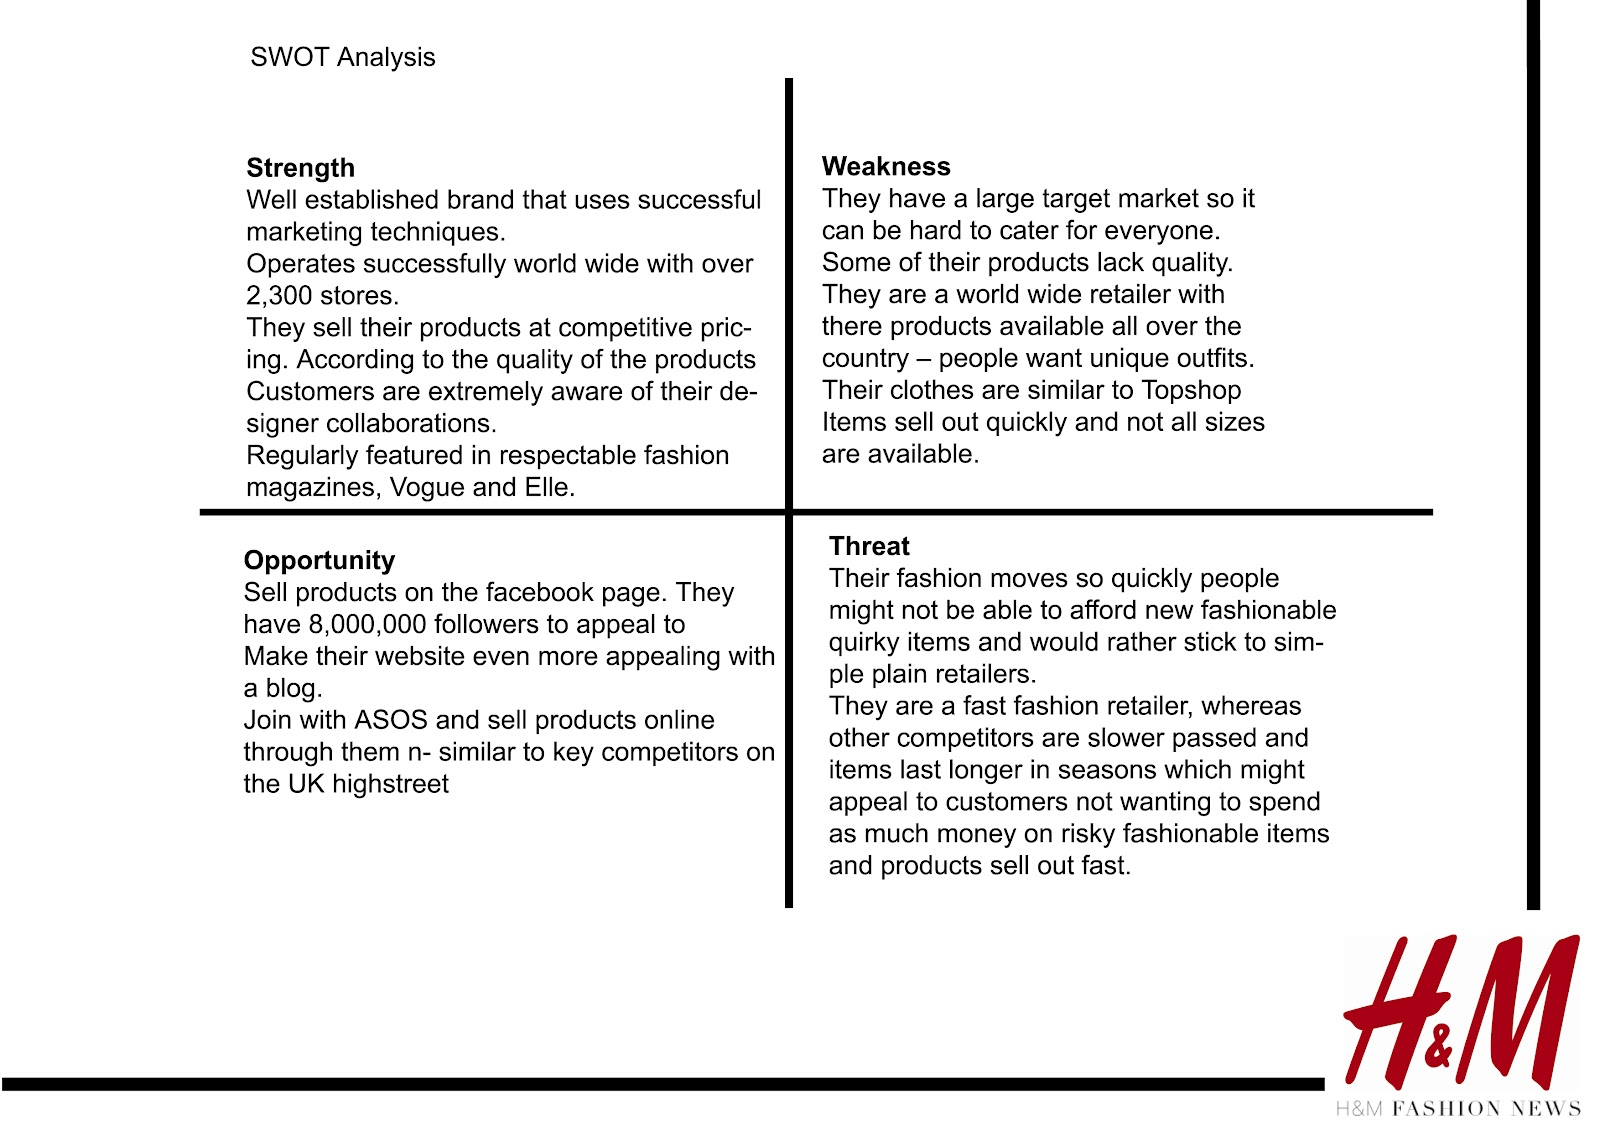 h m swot analysis What is a 'swot analysis' swot analysis is a process that identifies an organization's strengths, weaknesses, opportunities and threats specifically, swot is a basic, analytical framework that assesses what an entity (usually a business, though it can be used for a place, industry or product) can.